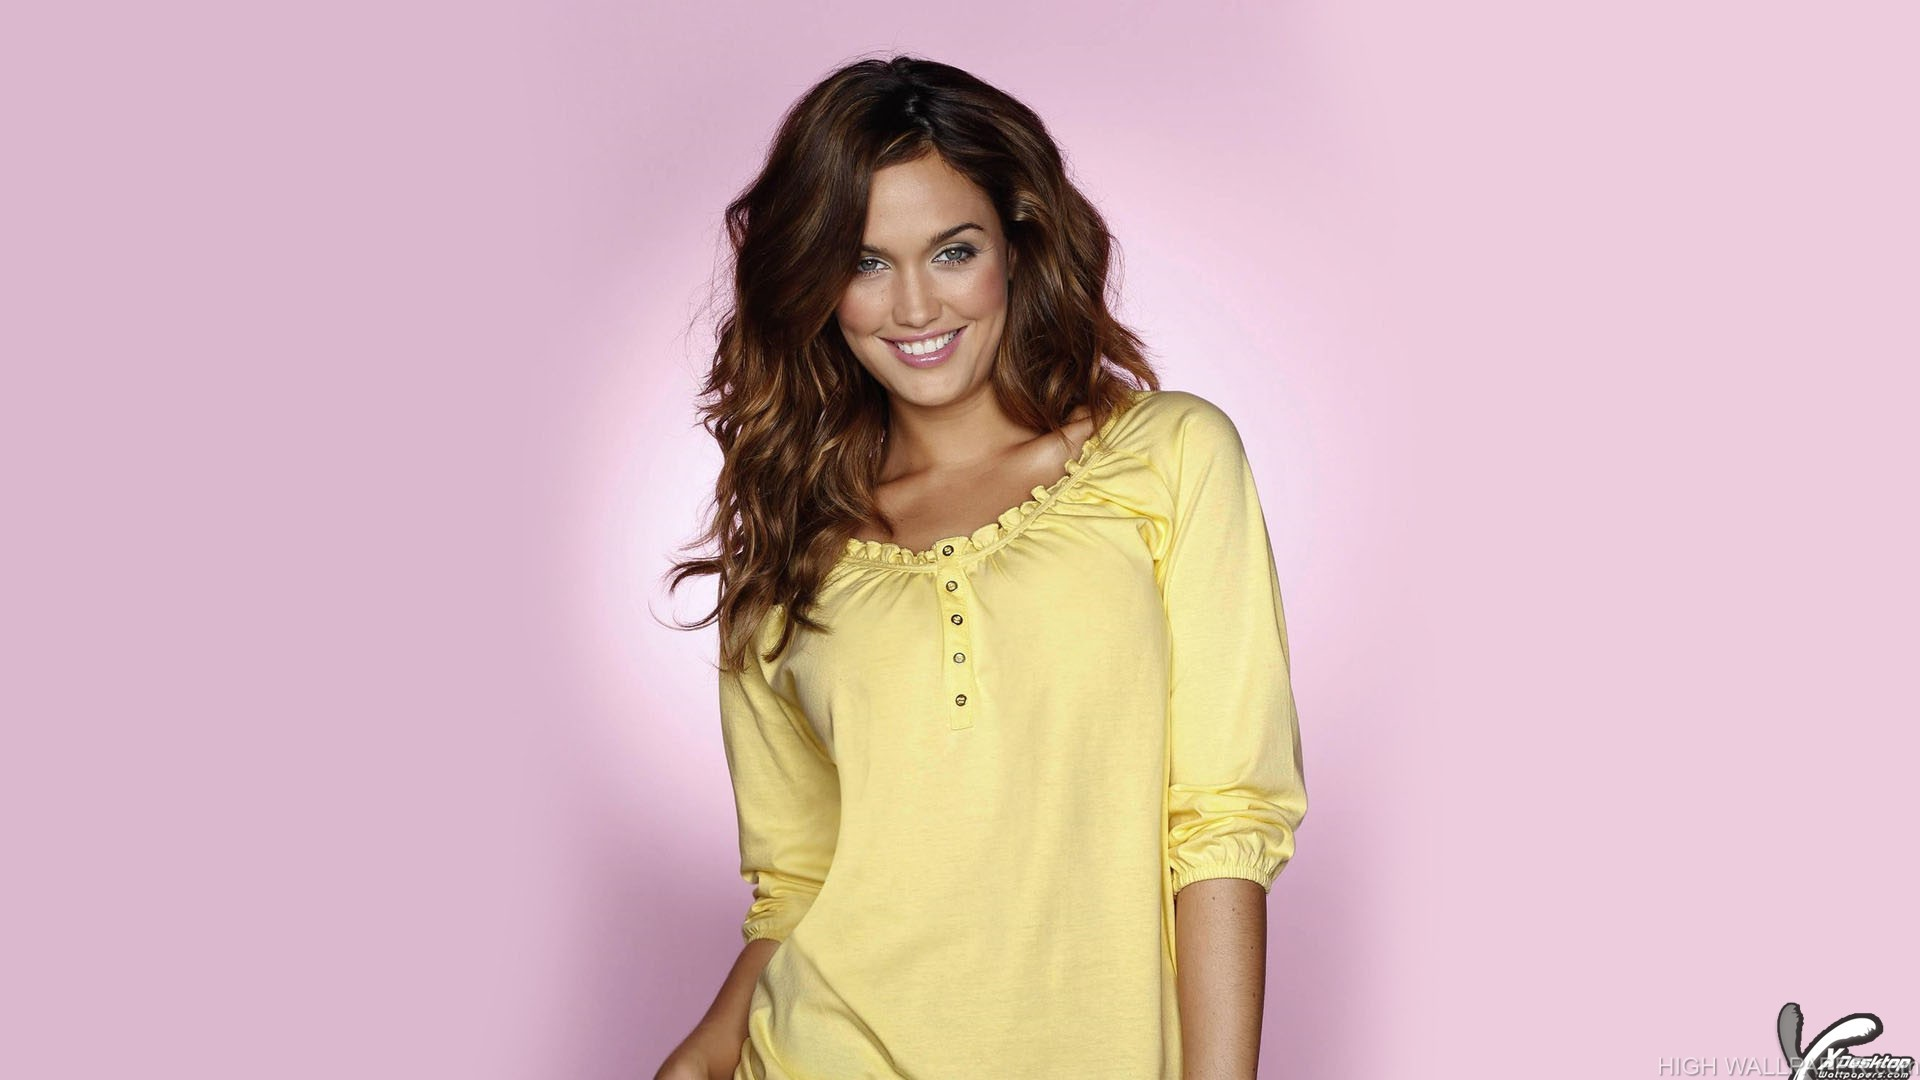 Bailey Nortje Wearing Yellow Top Smiling